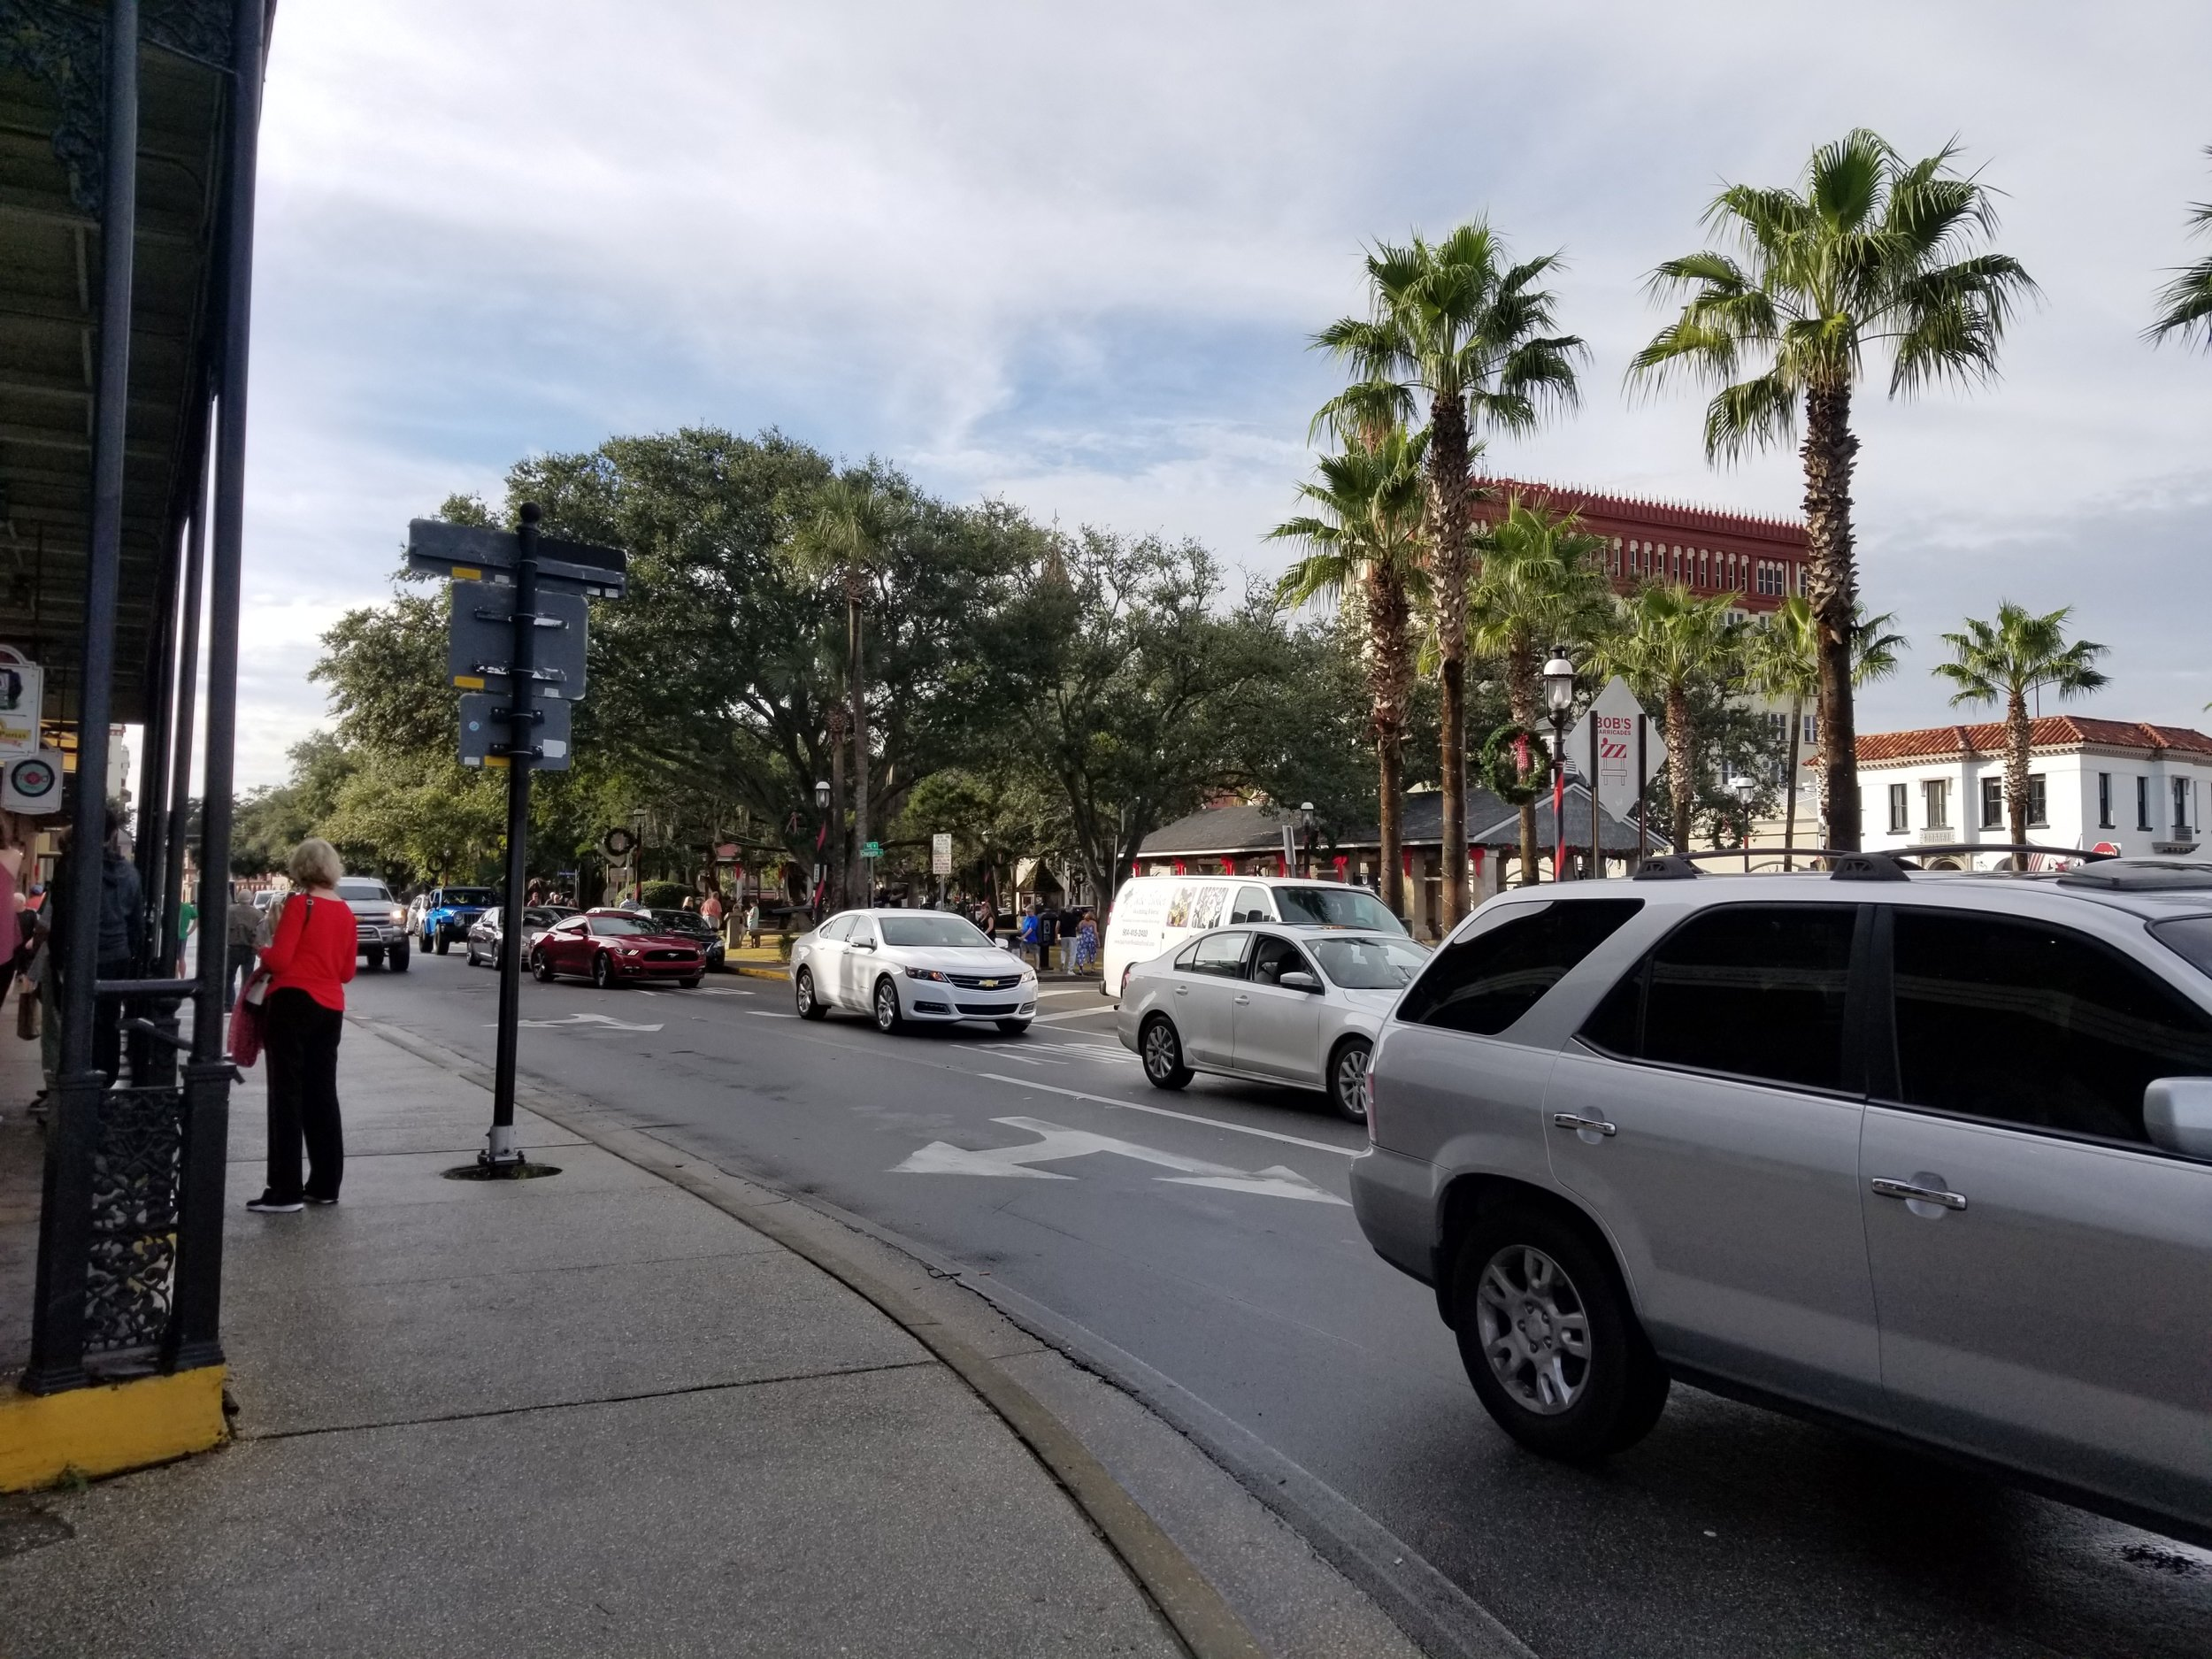 Turning the corner onto A1A.